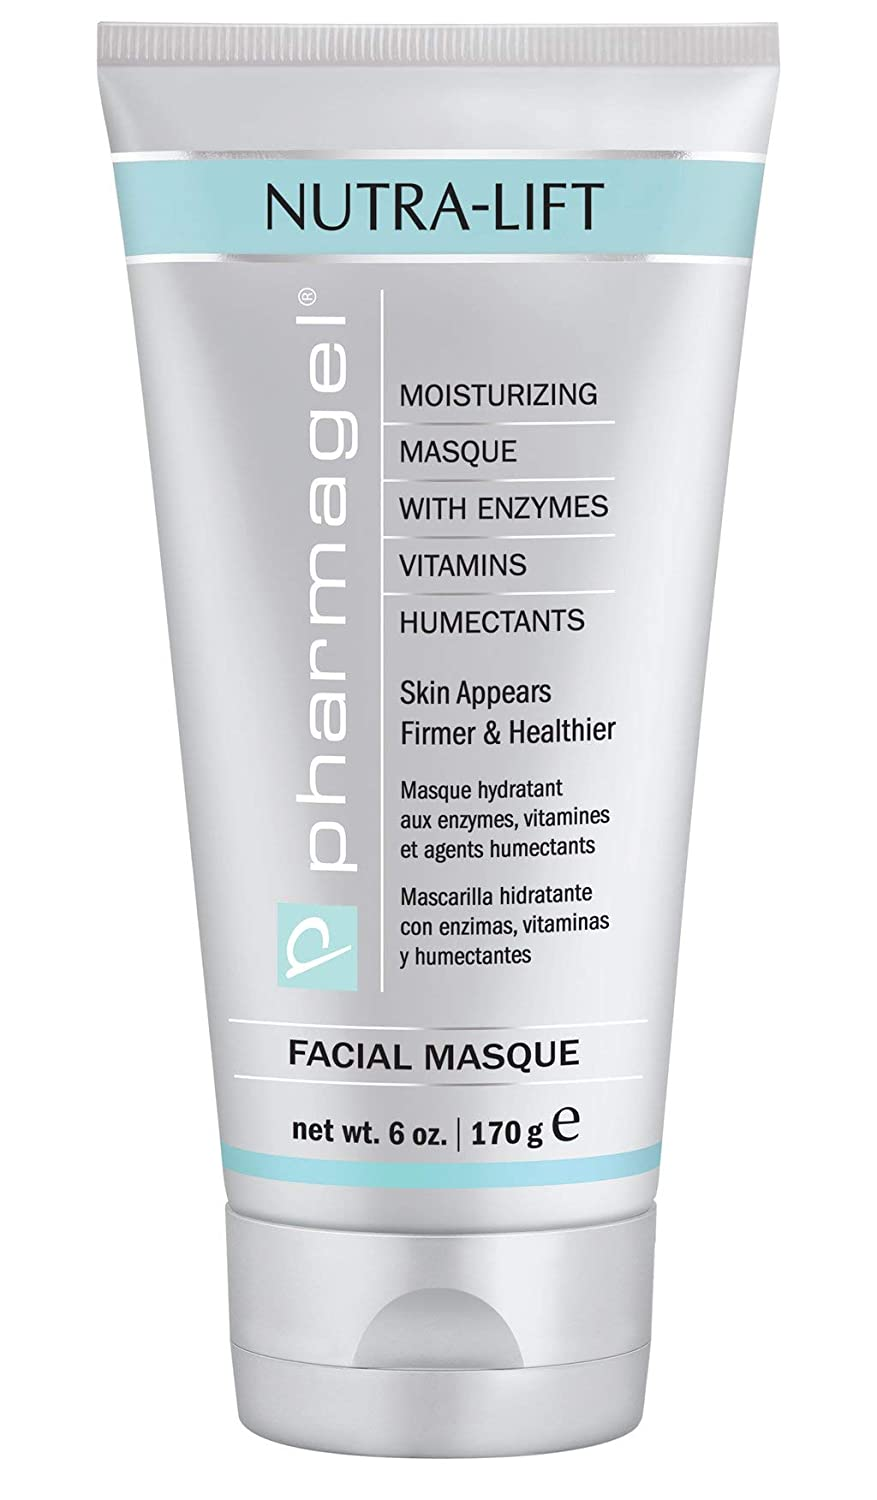 Pharmagel Nutra-Lift Facial Masque | Hydrating, Brightening, and Anti-Aging Facial Mask | Clay Mask | Face Moisturizer for All Skin Type - 6 oz.